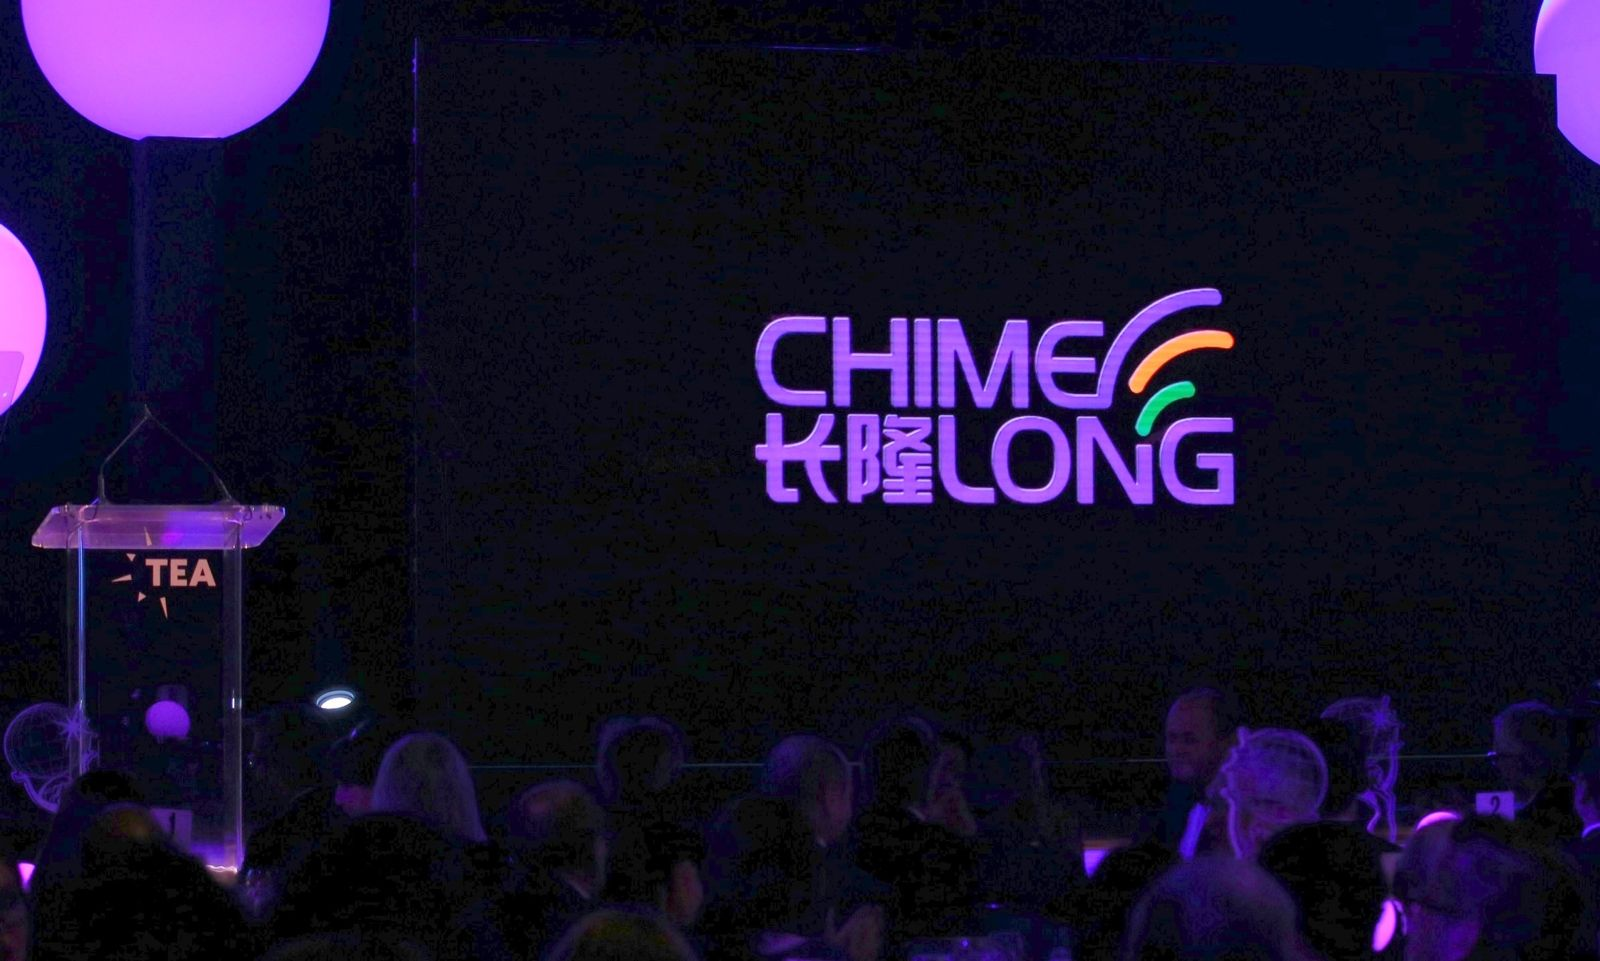 Chimelong Group steps up as Presenting Sponsor of 2018 TEA Thea Awards Gala